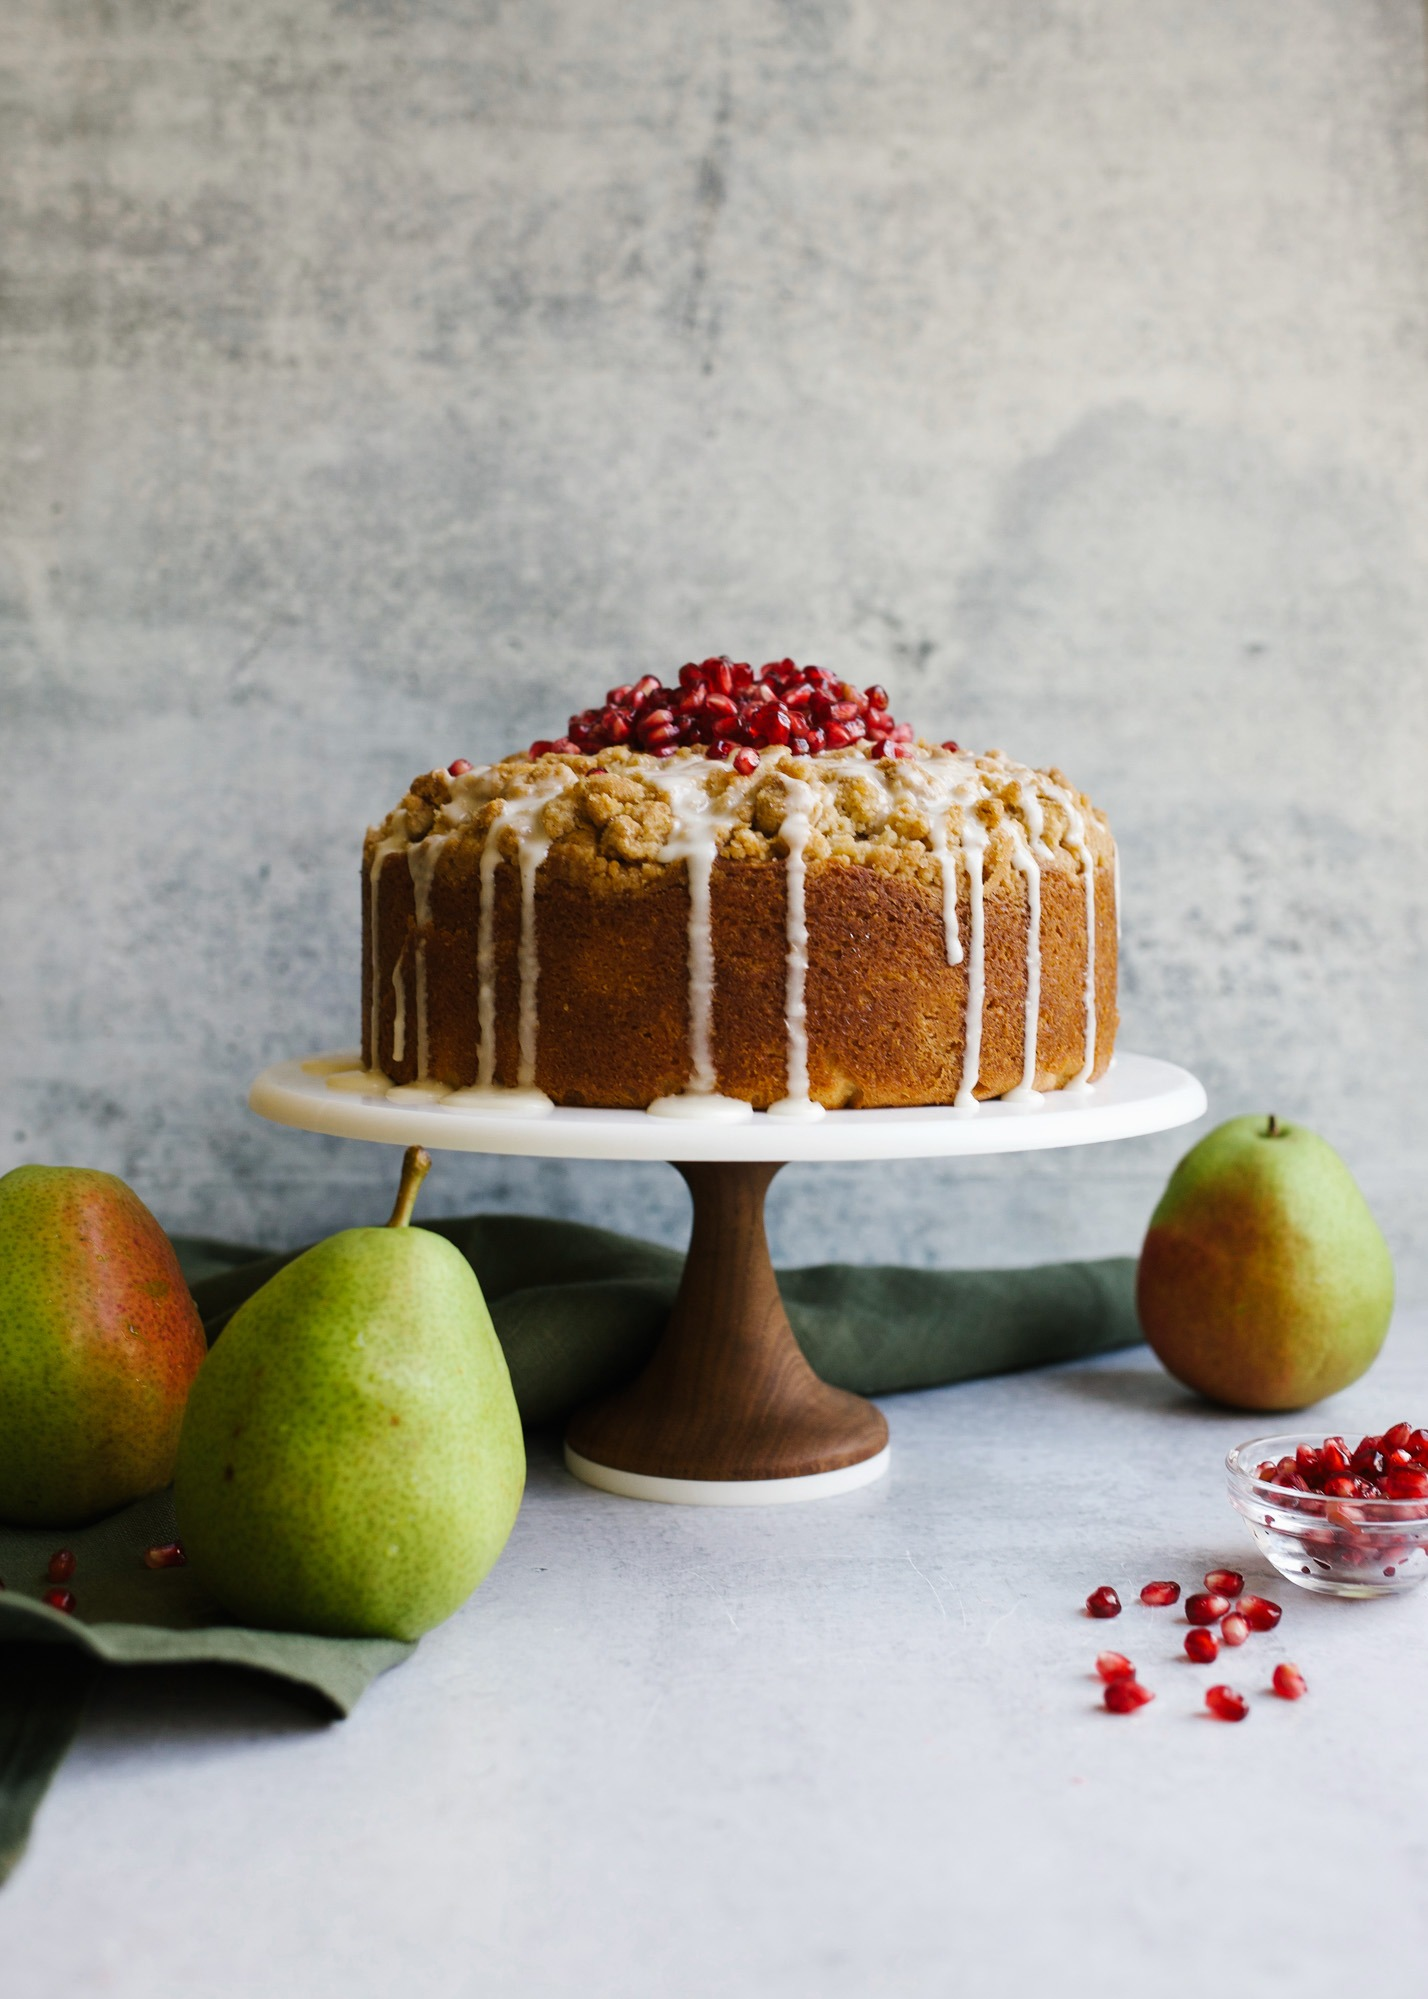 Pear Almond Cake by Wood and Spoon blog by Kate Wood. This is a simple pound cake bundt cake with a streusel crumb topping that is loaded with fresh sweetened pear fruit and almond flavor. The coffee cake makes a great breakfast or dessert treat or snack for your holiday winter tables. Learn more about the recipe and how to prep this simple cake that can be garnished with pomegranate seeds on thewoodandspoon.com